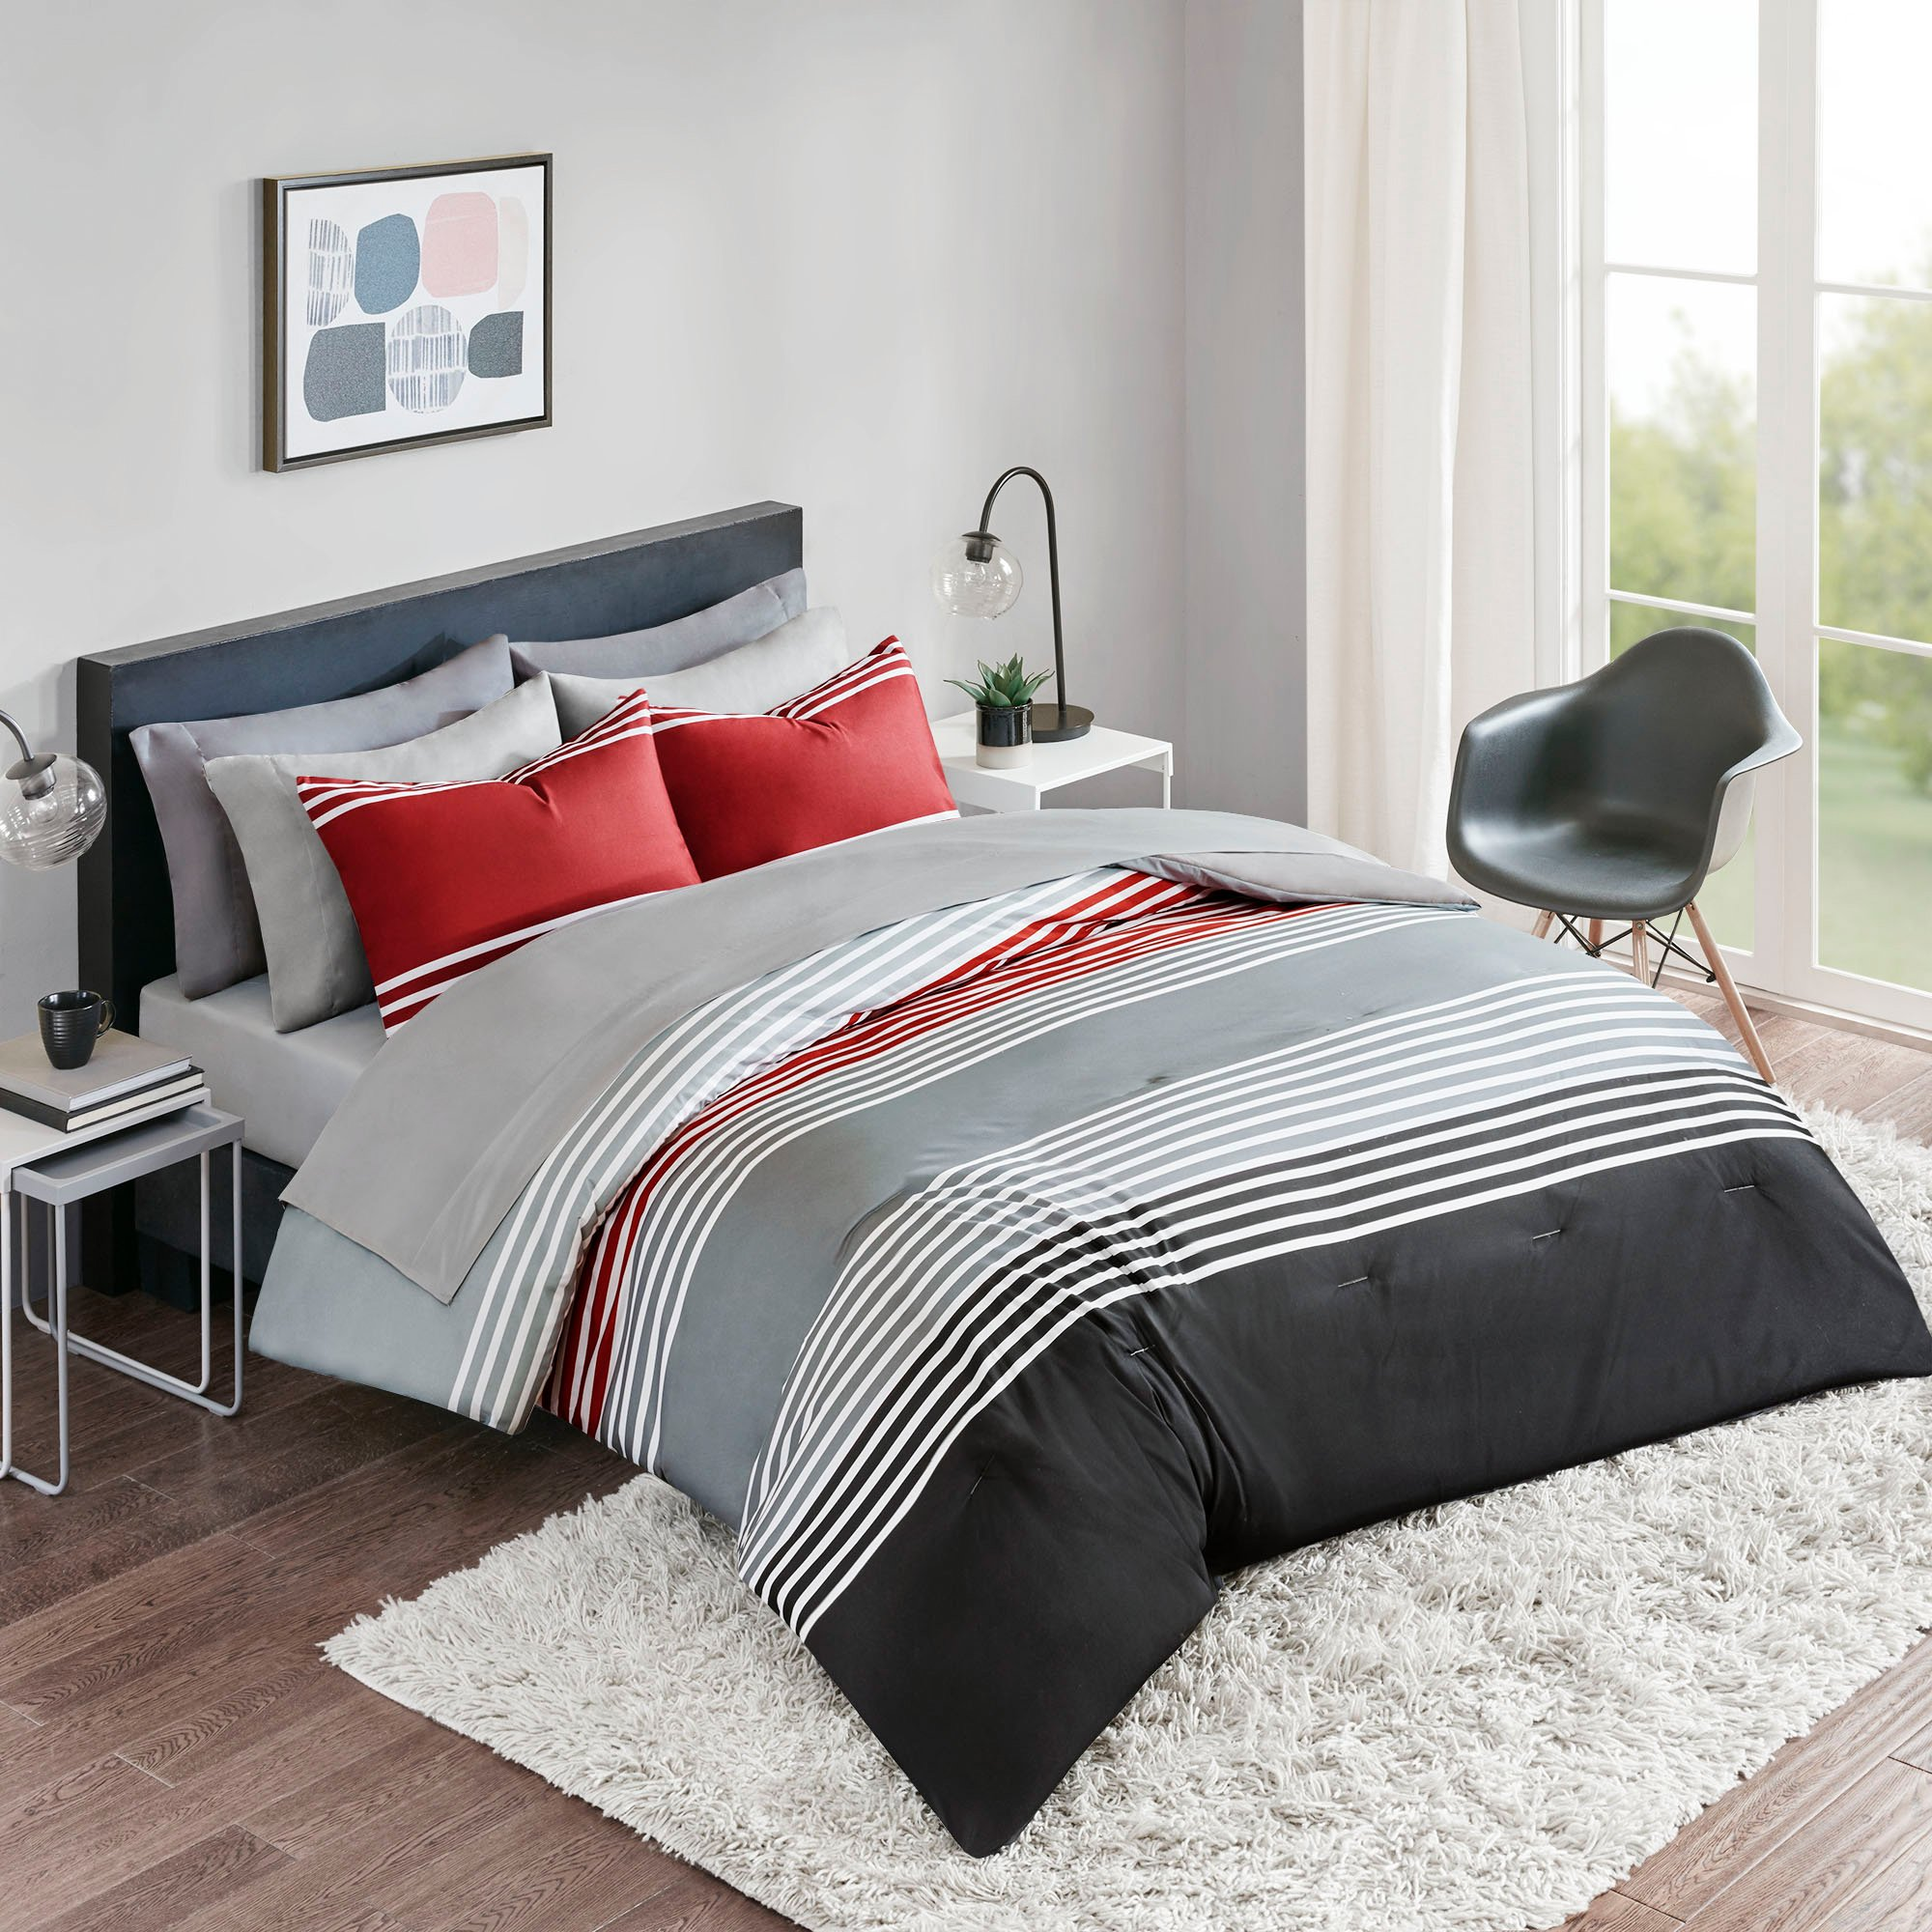 Bed In a Bag Twin Comforter Set with Sheets feat. Two Side Pockets - Colin 6 Piece All Season Bedding Sets Twin Microfiber Printed Red/Grey Stripes